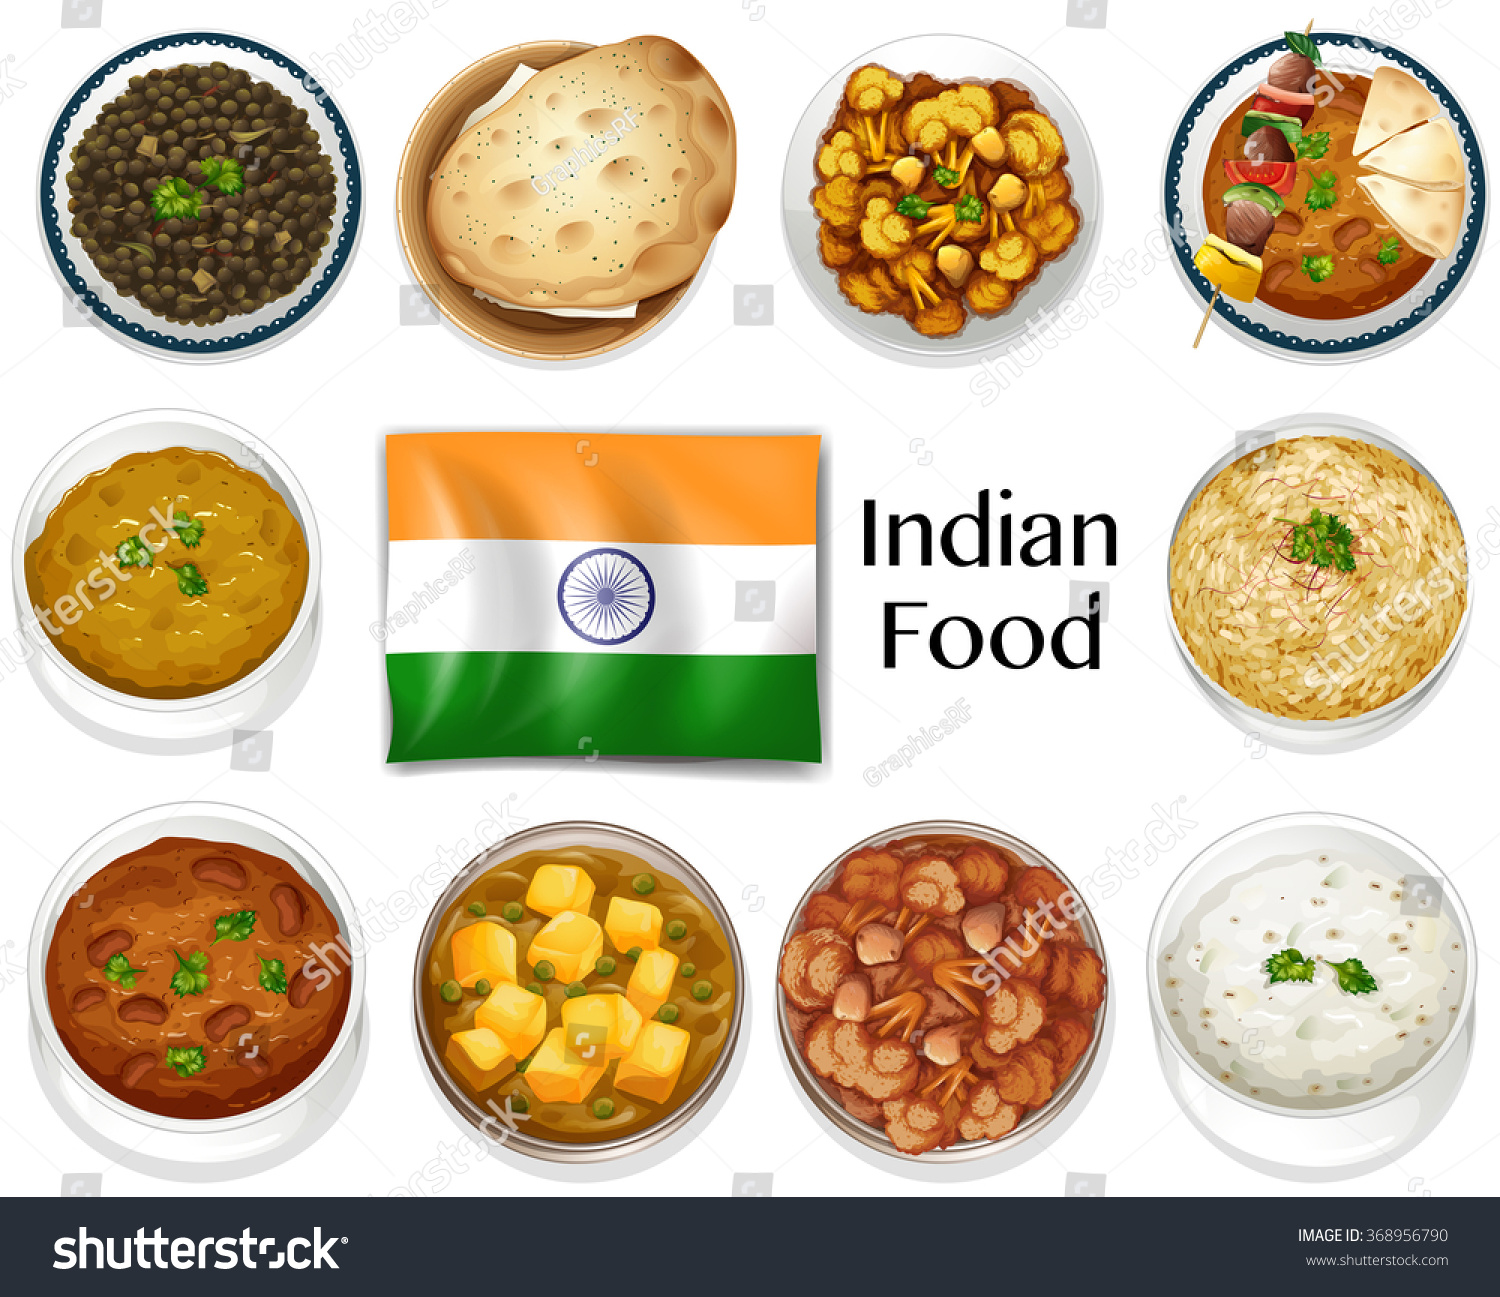 Different dish indian food illustration stock vector 368956790 shutterstock - Different indian cuisines ...